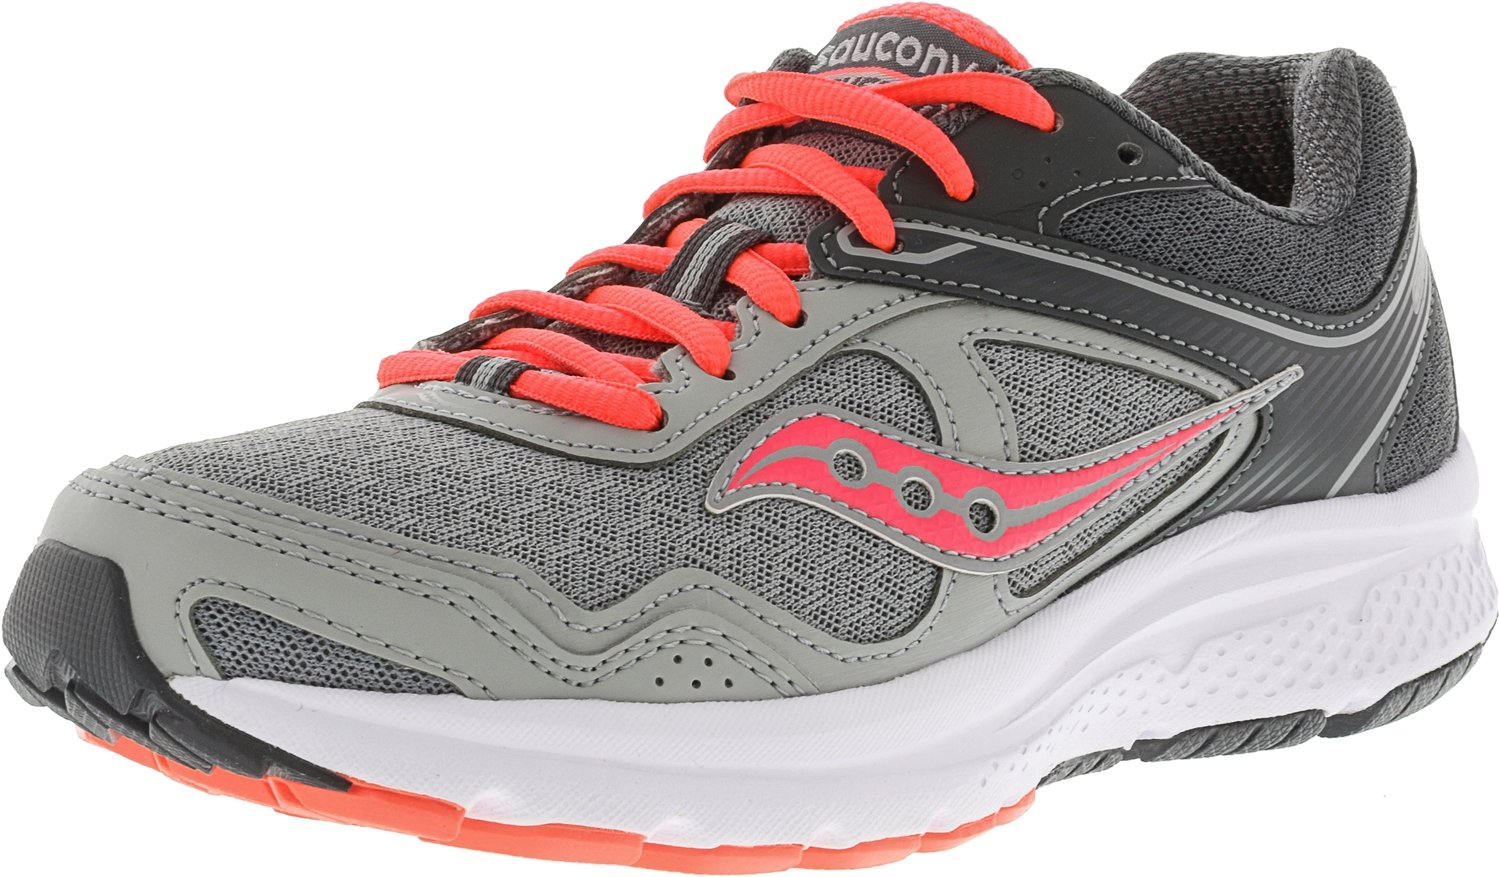 Saucony Women's Cohesion 10 Running Shoe B075FC2ZBY 11 B(M) US|Grey/Coral